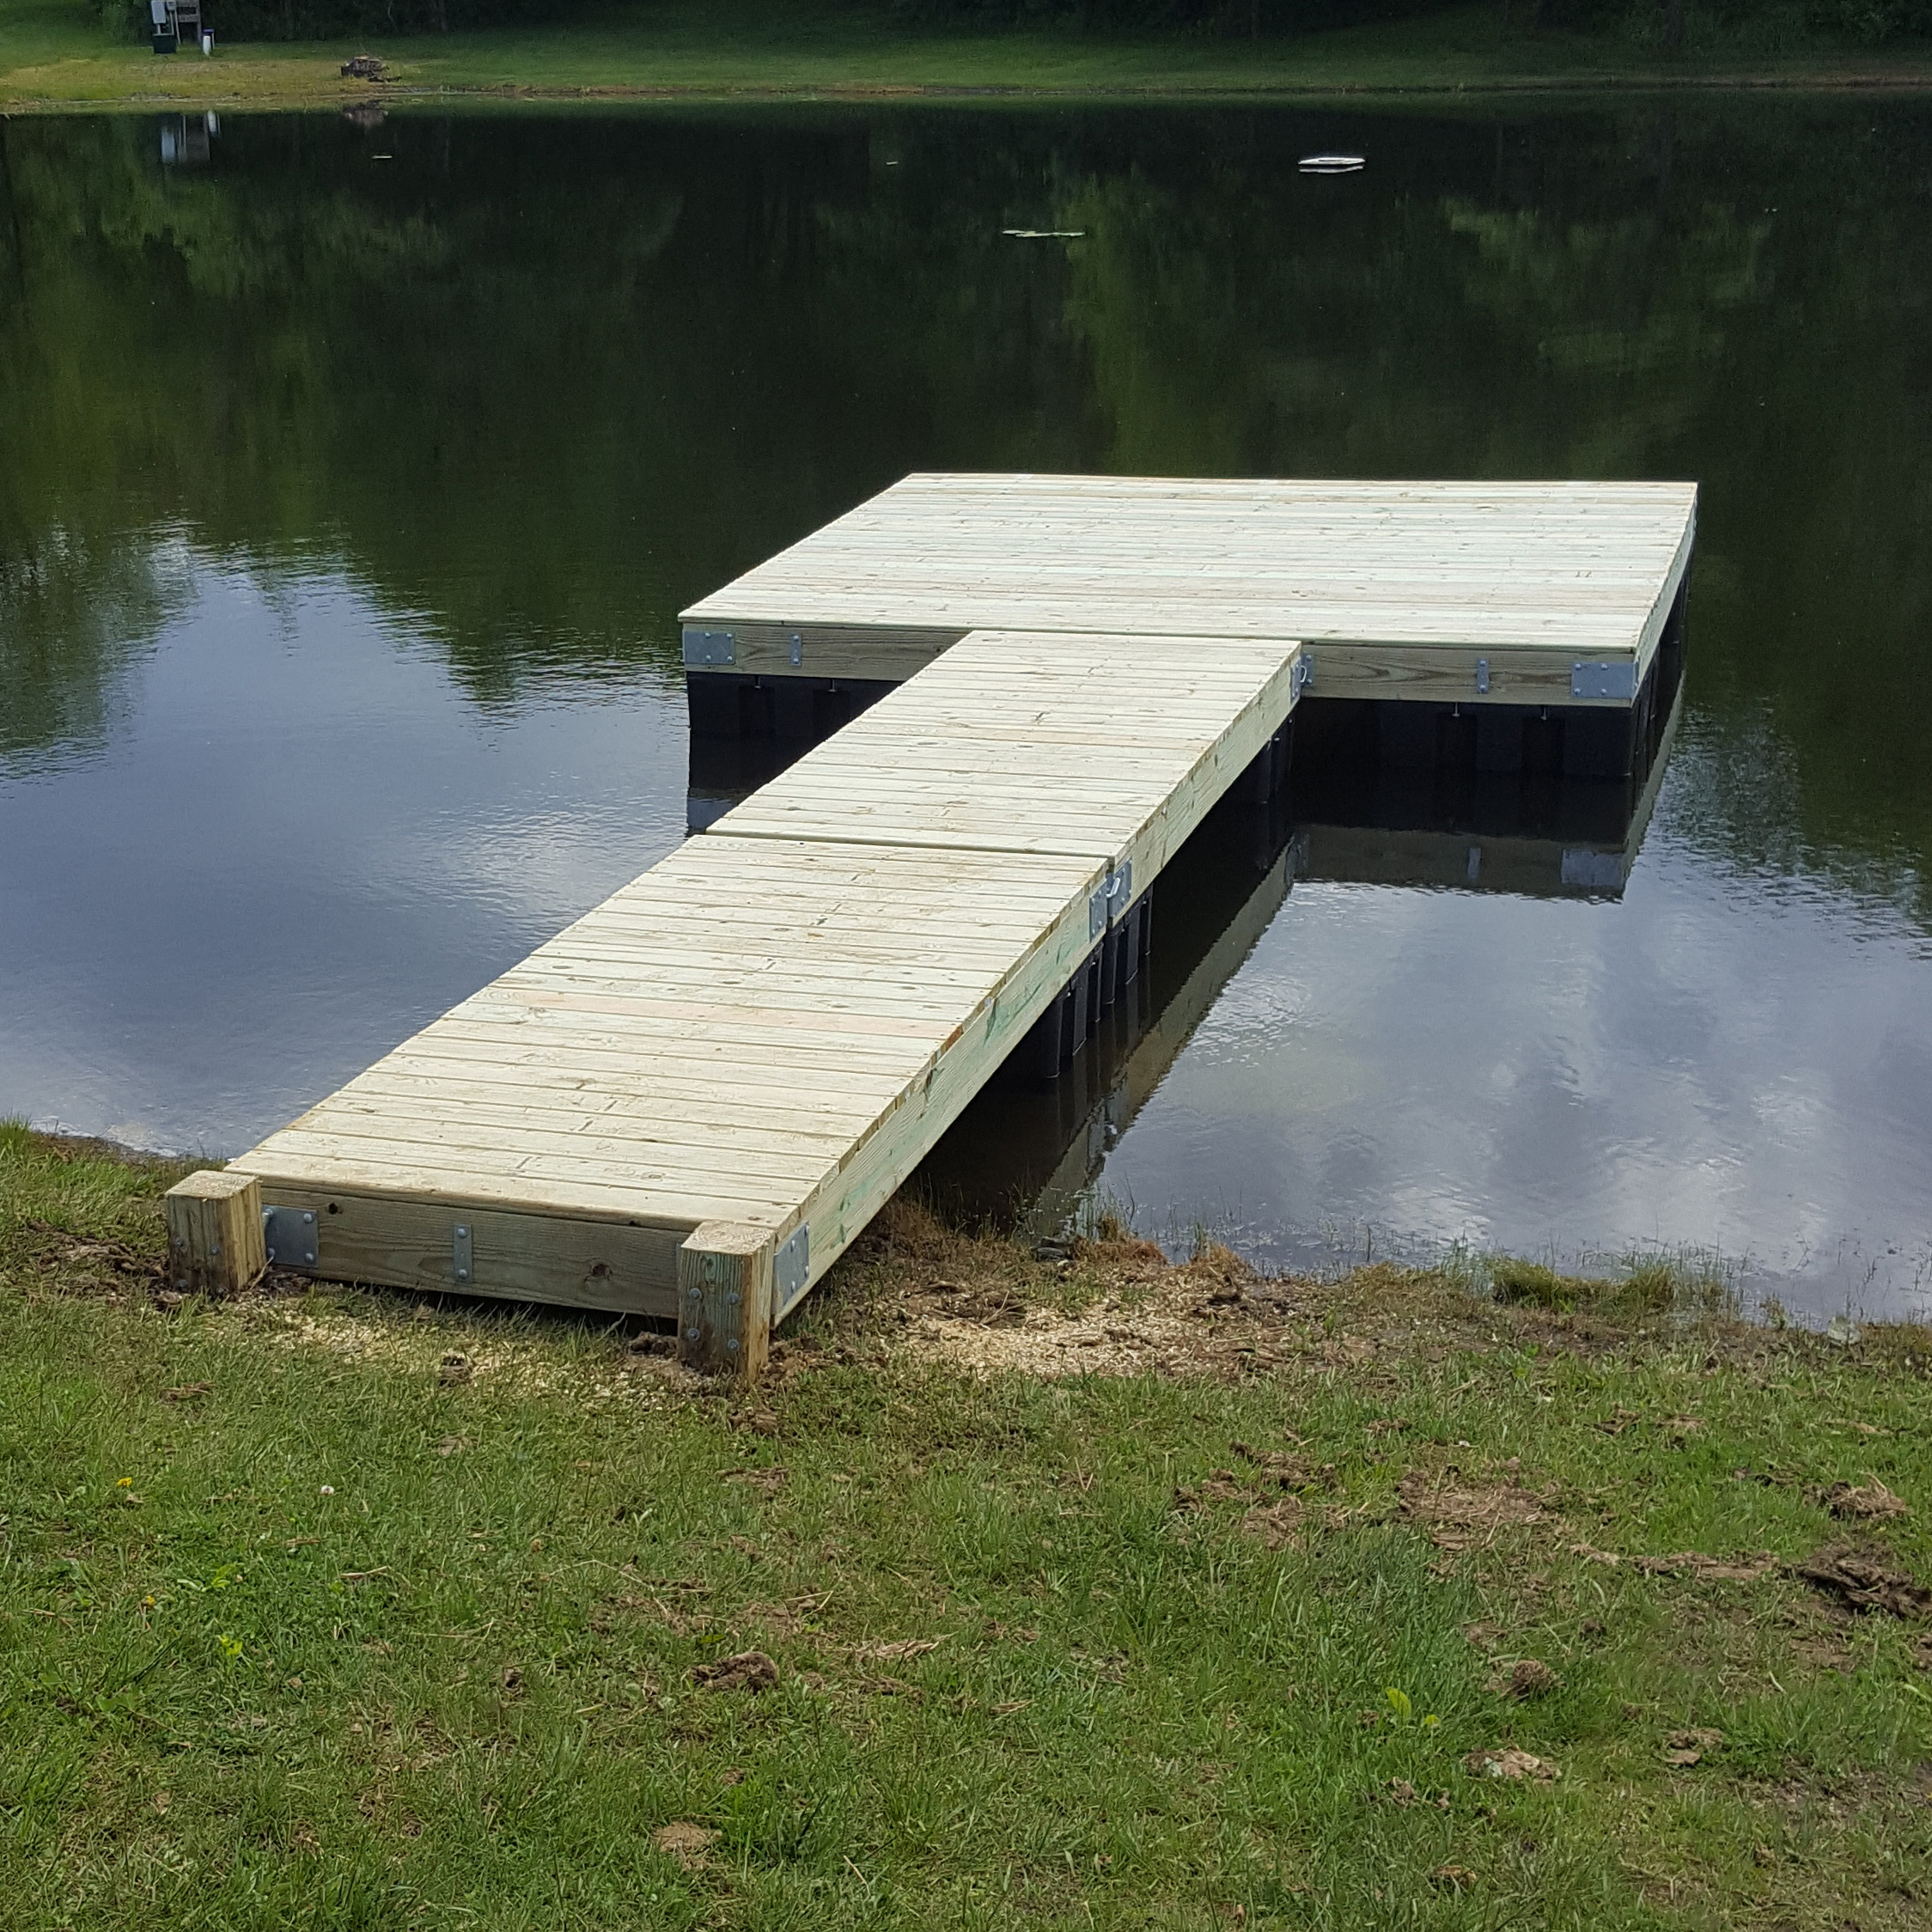 Dock kits 12 x 12 now on sale bjornsen pond management for Pond stocking fish for sale